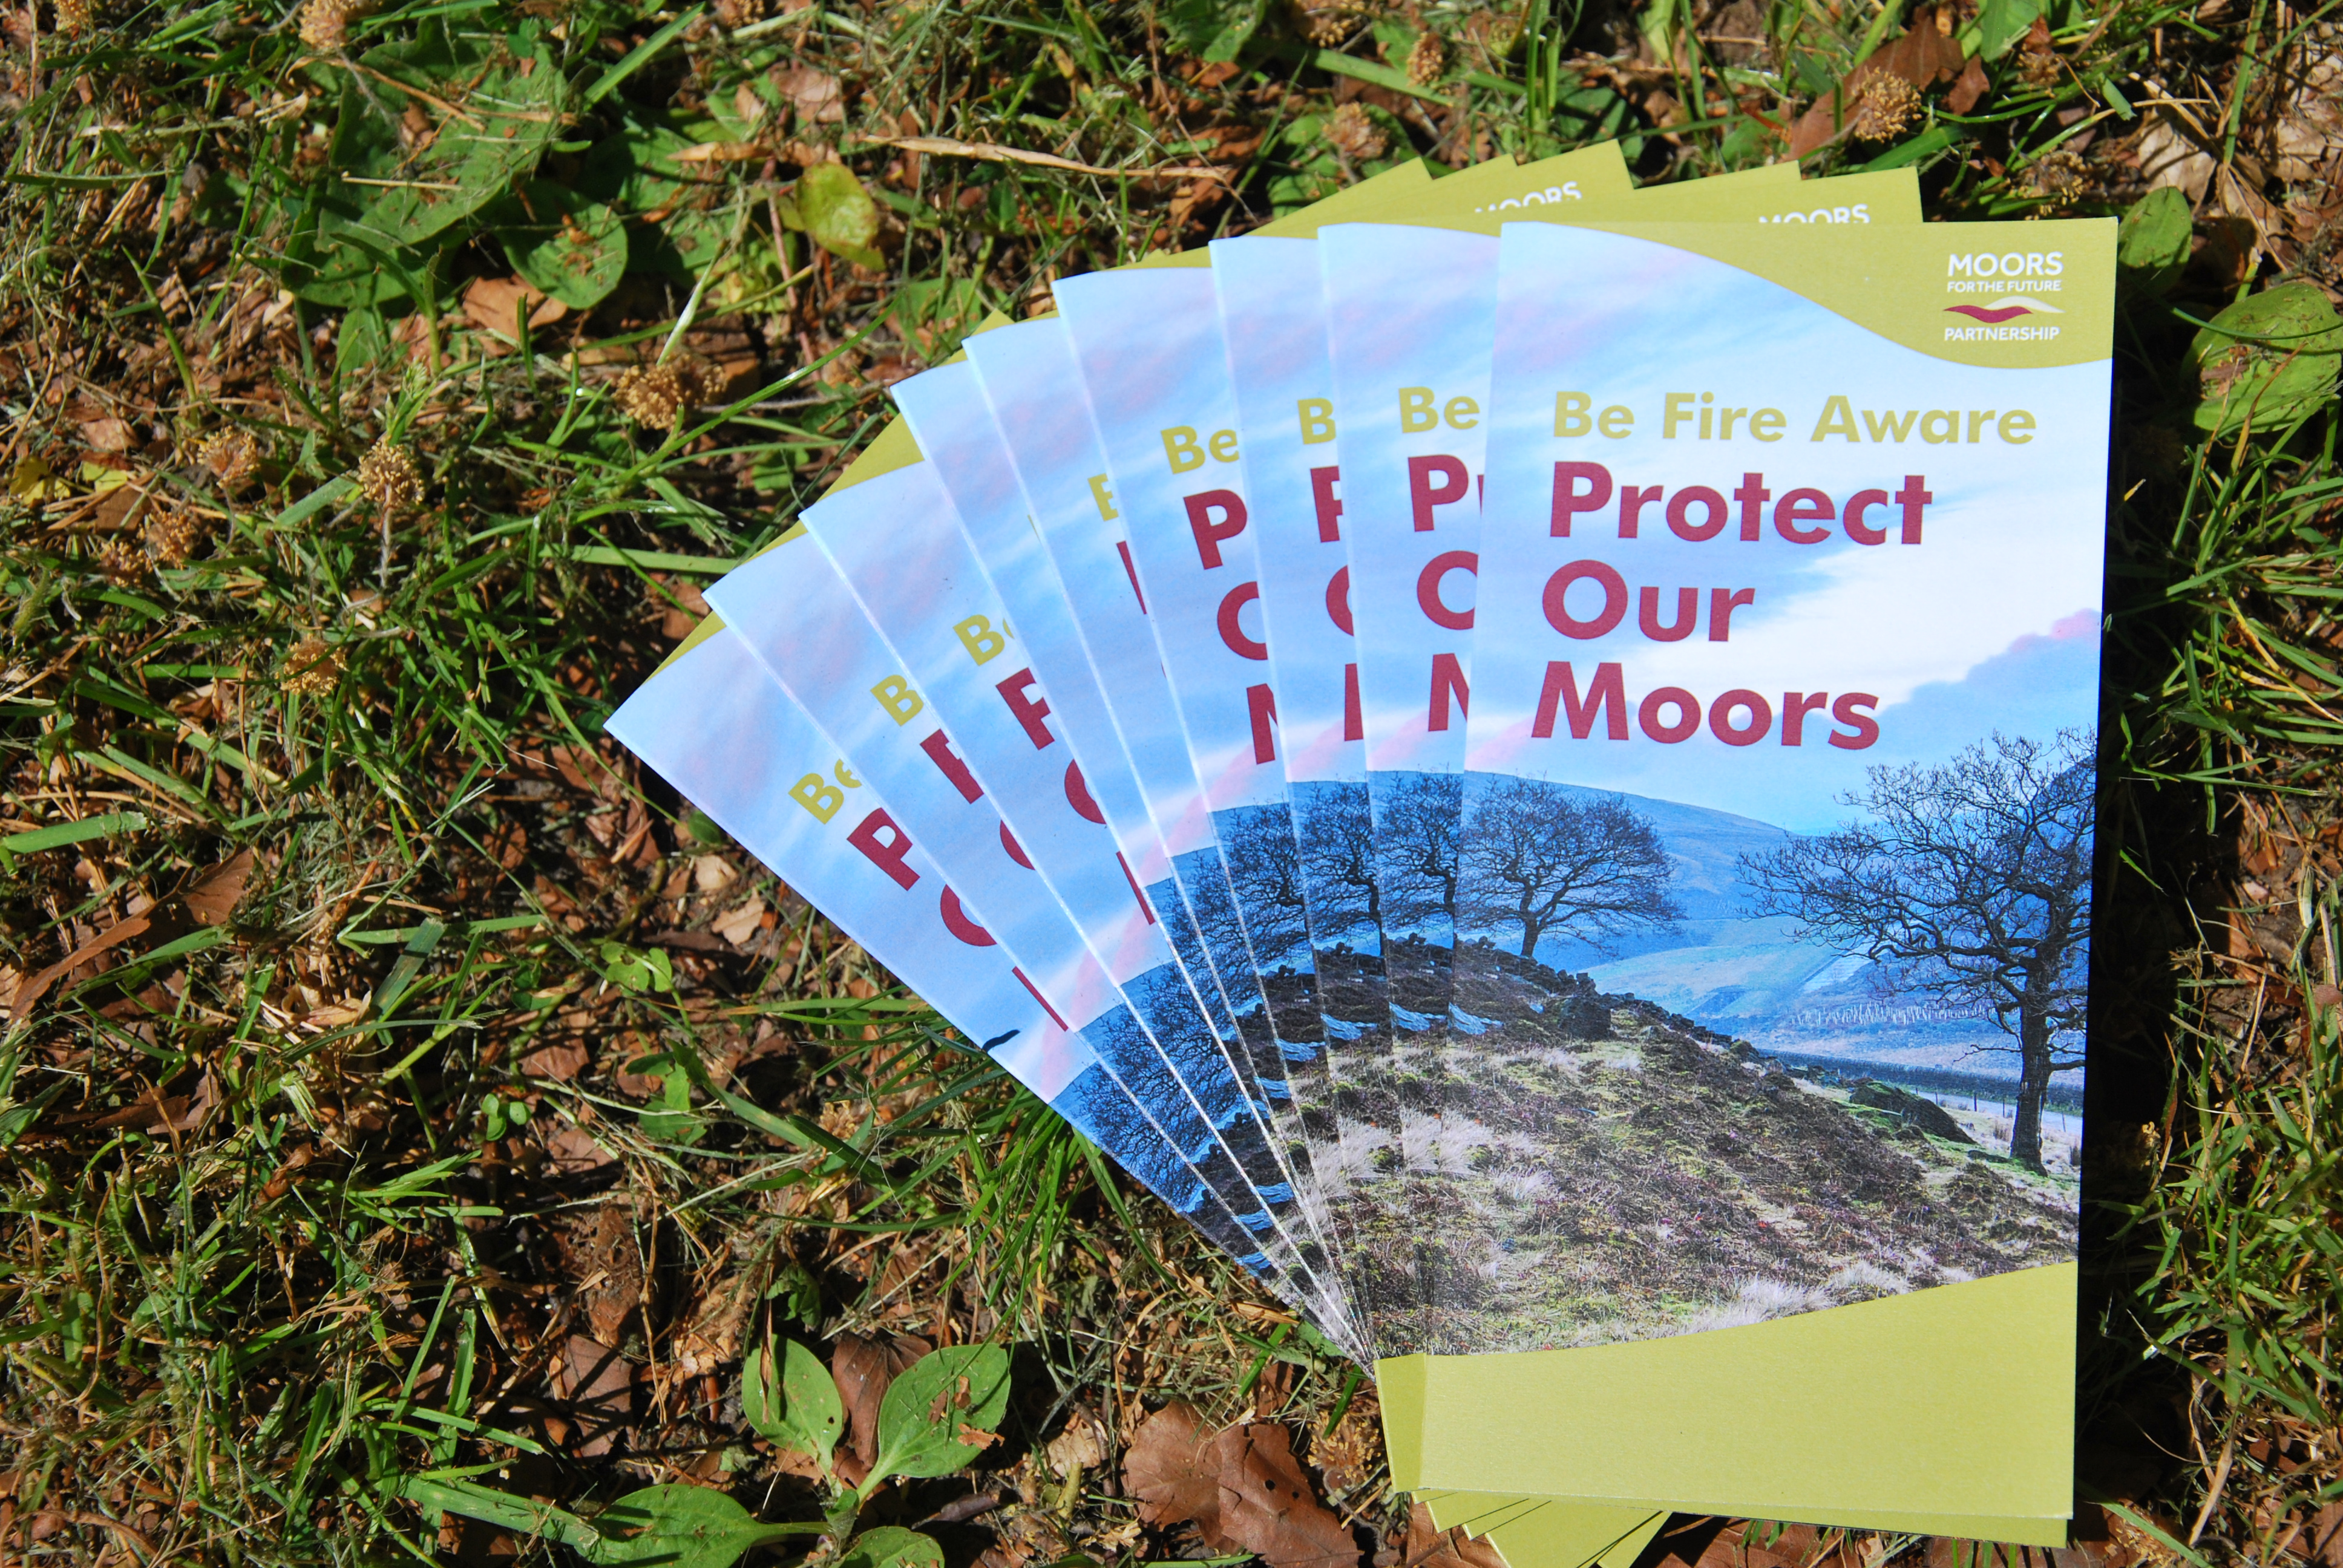 Be Fire Aware Leaflet - Protect Our Moors